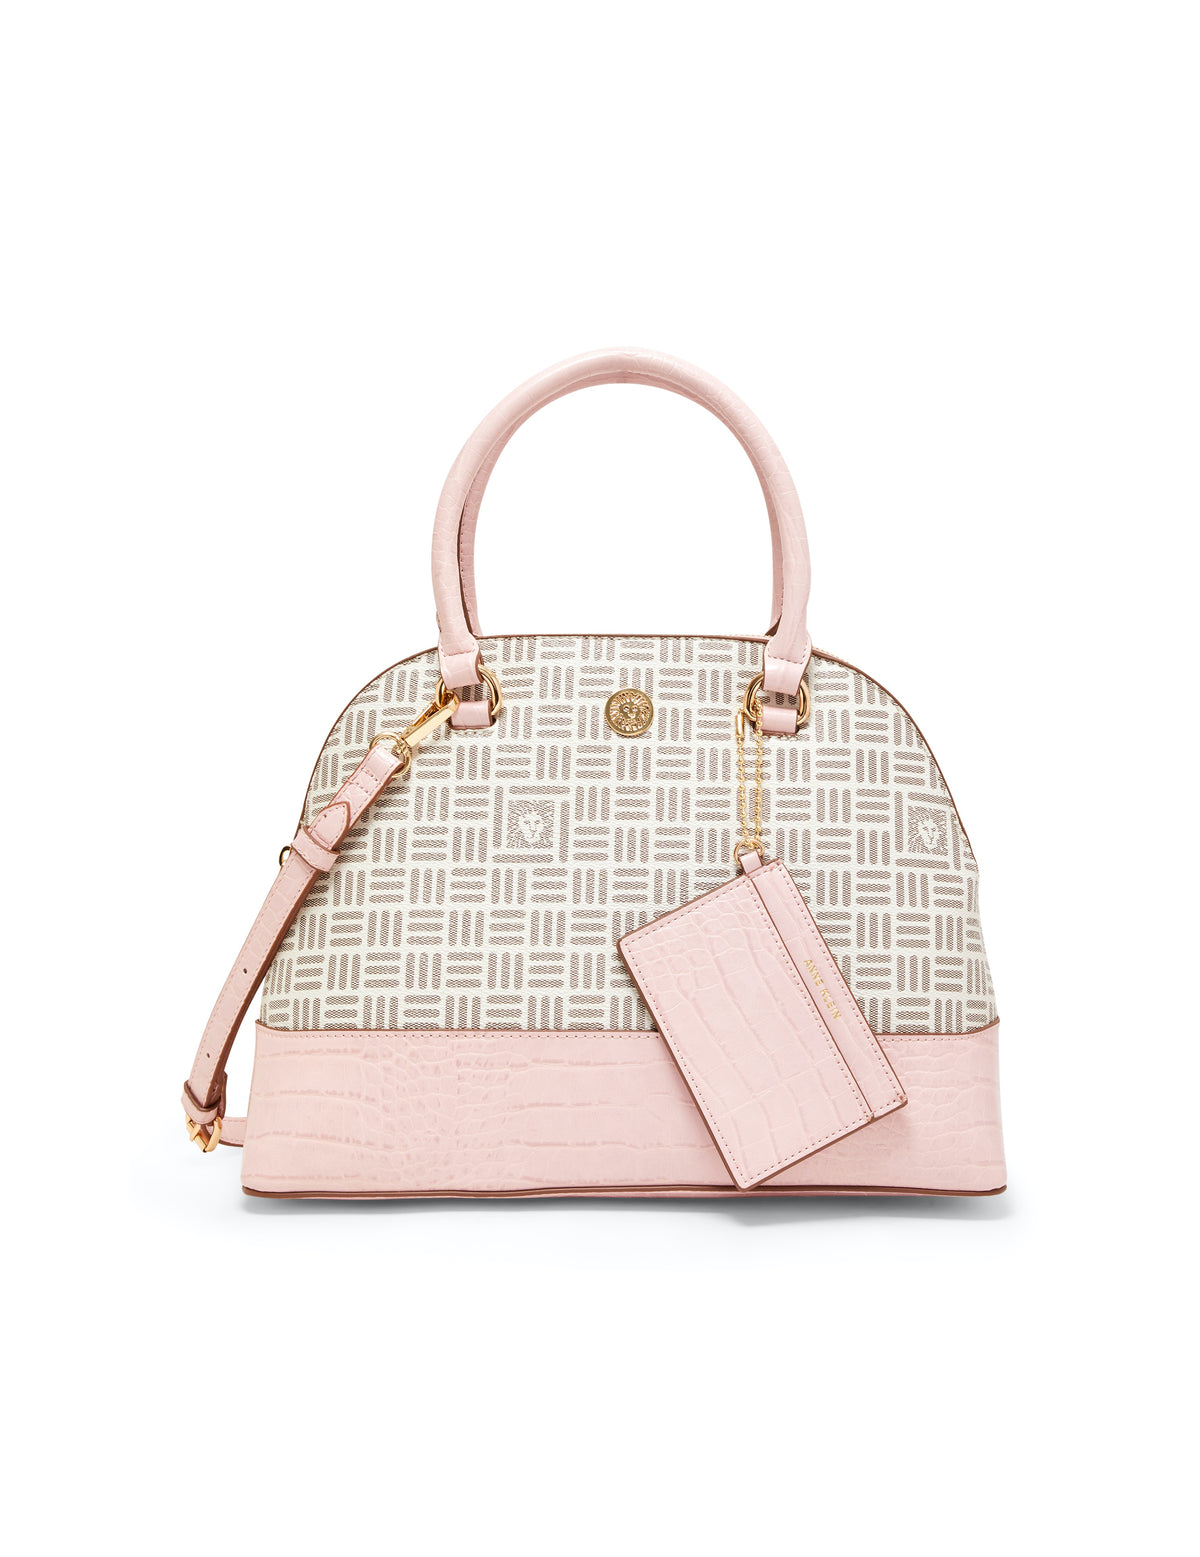 Triple Compartment Oyster/Rose Satchel Bag